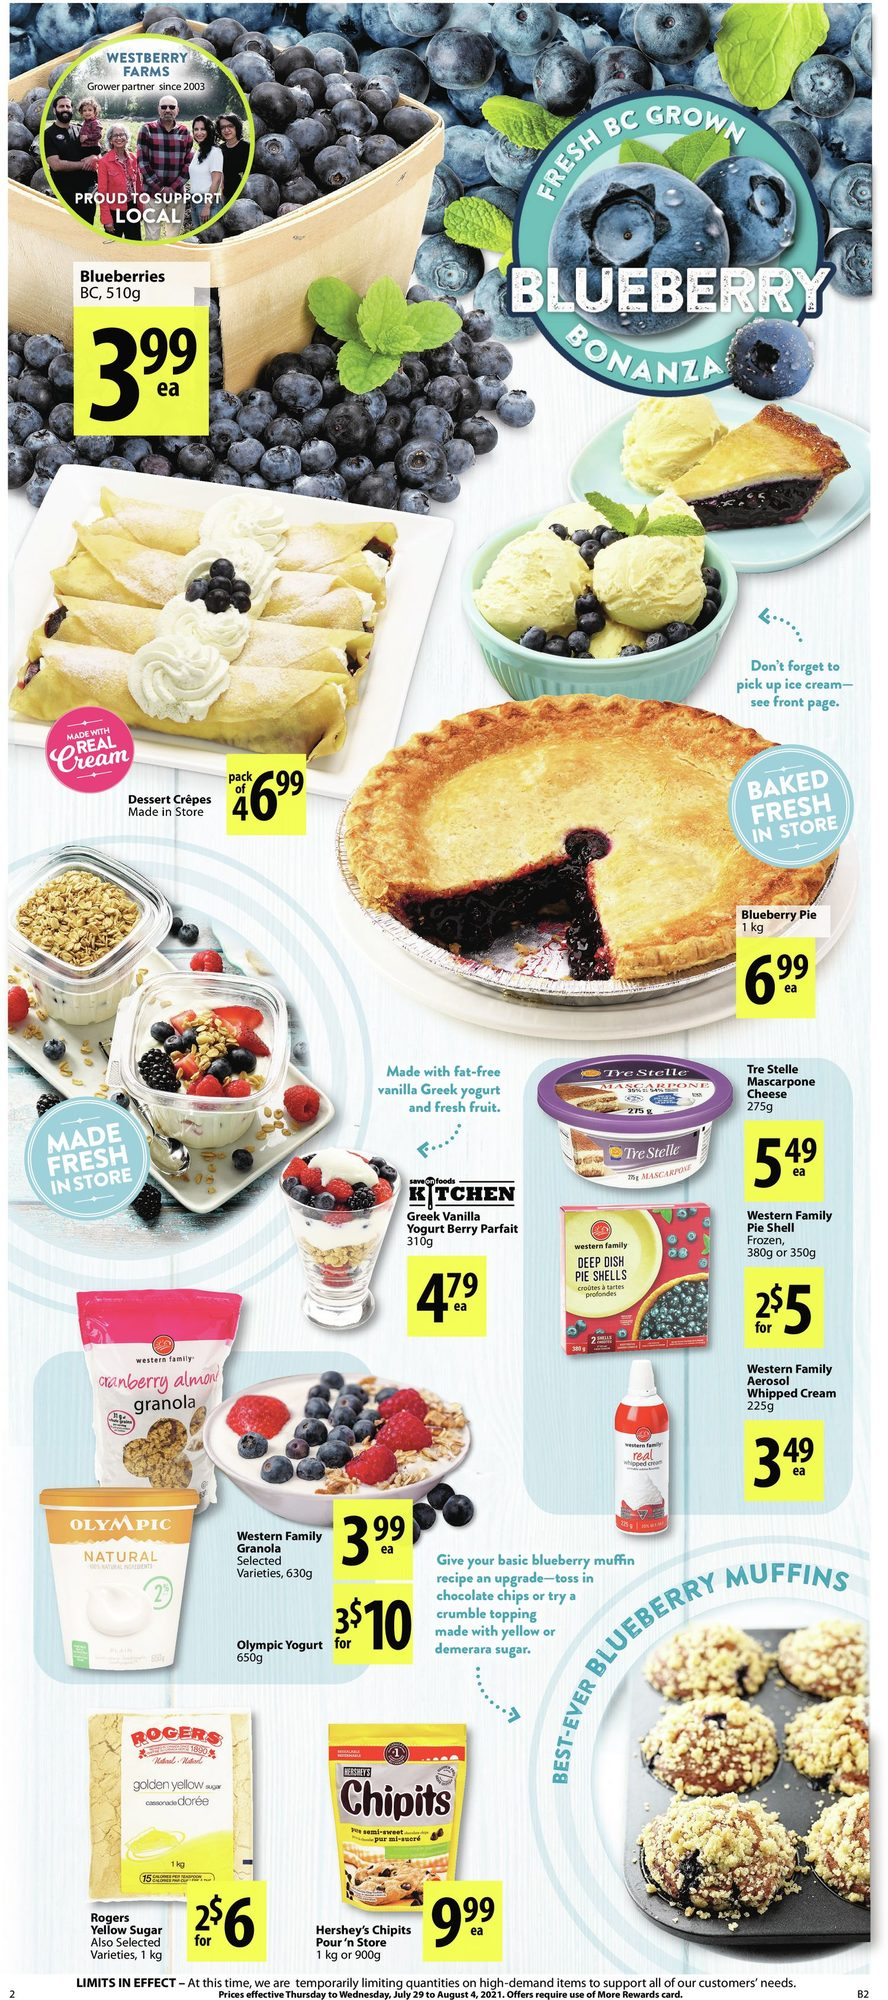 Save-On-Foods - Weekly Flyer Specials - Page 2